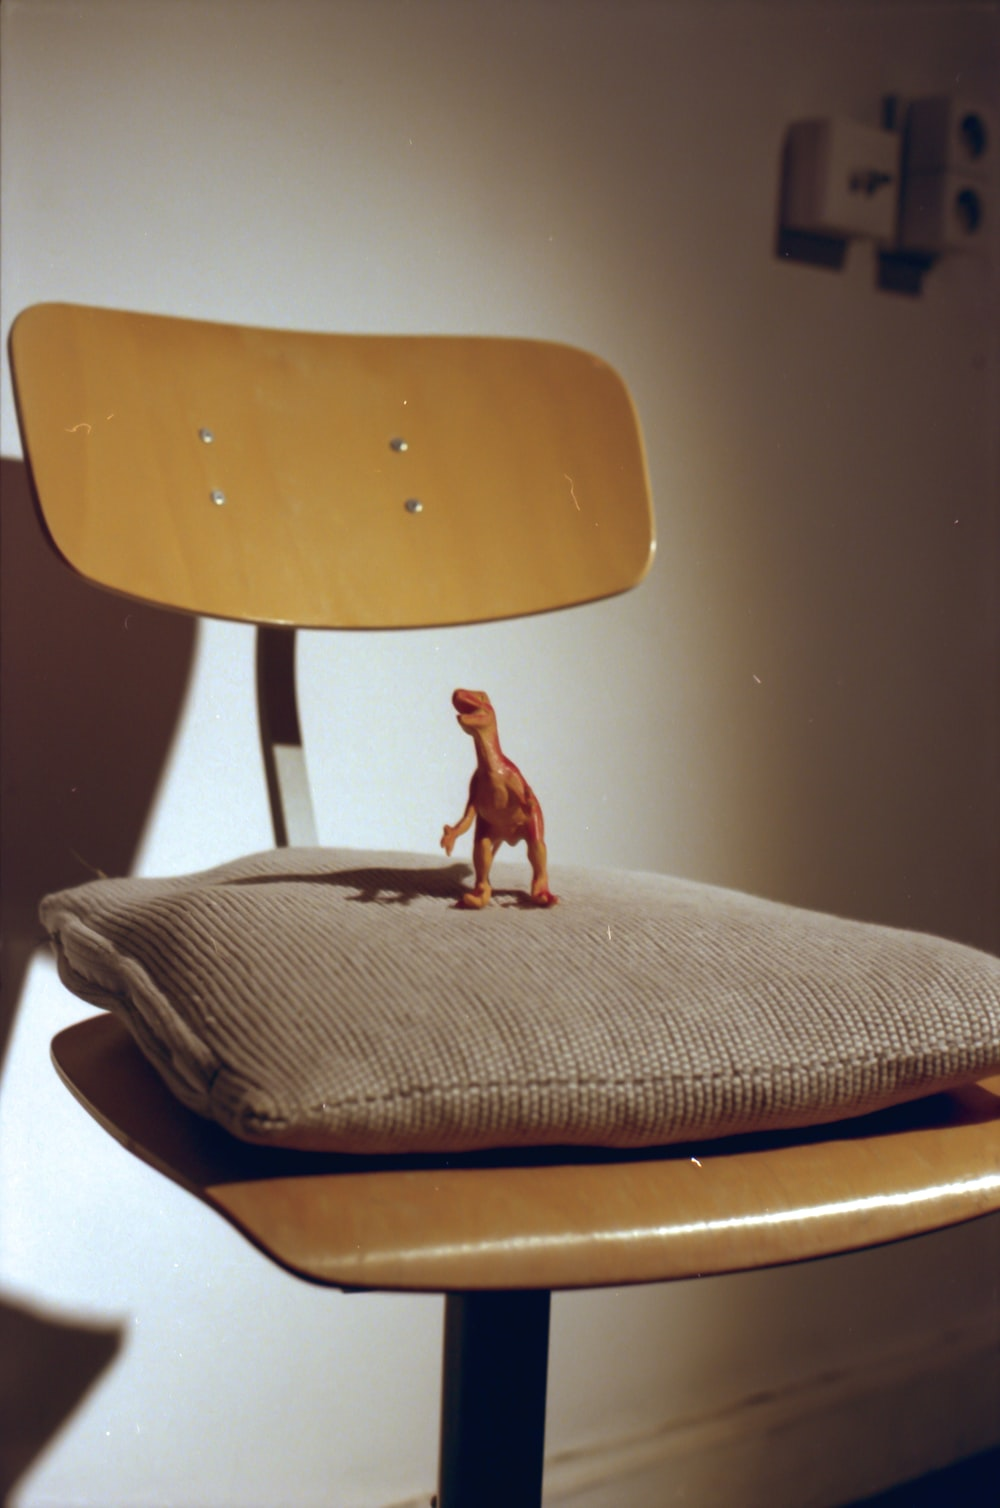 brown dog figurine on brown wooden chair